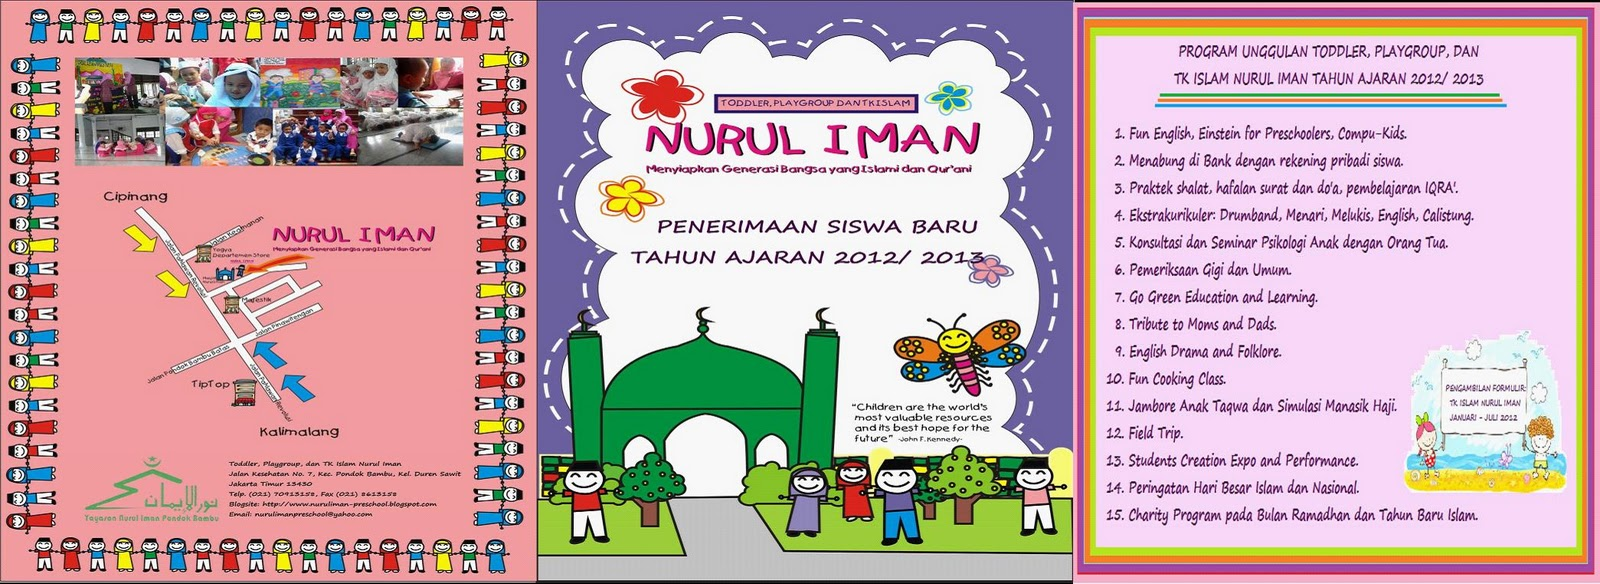 NURUL IMAN: Islamic Toddler, Playgroup, and Kindergarten